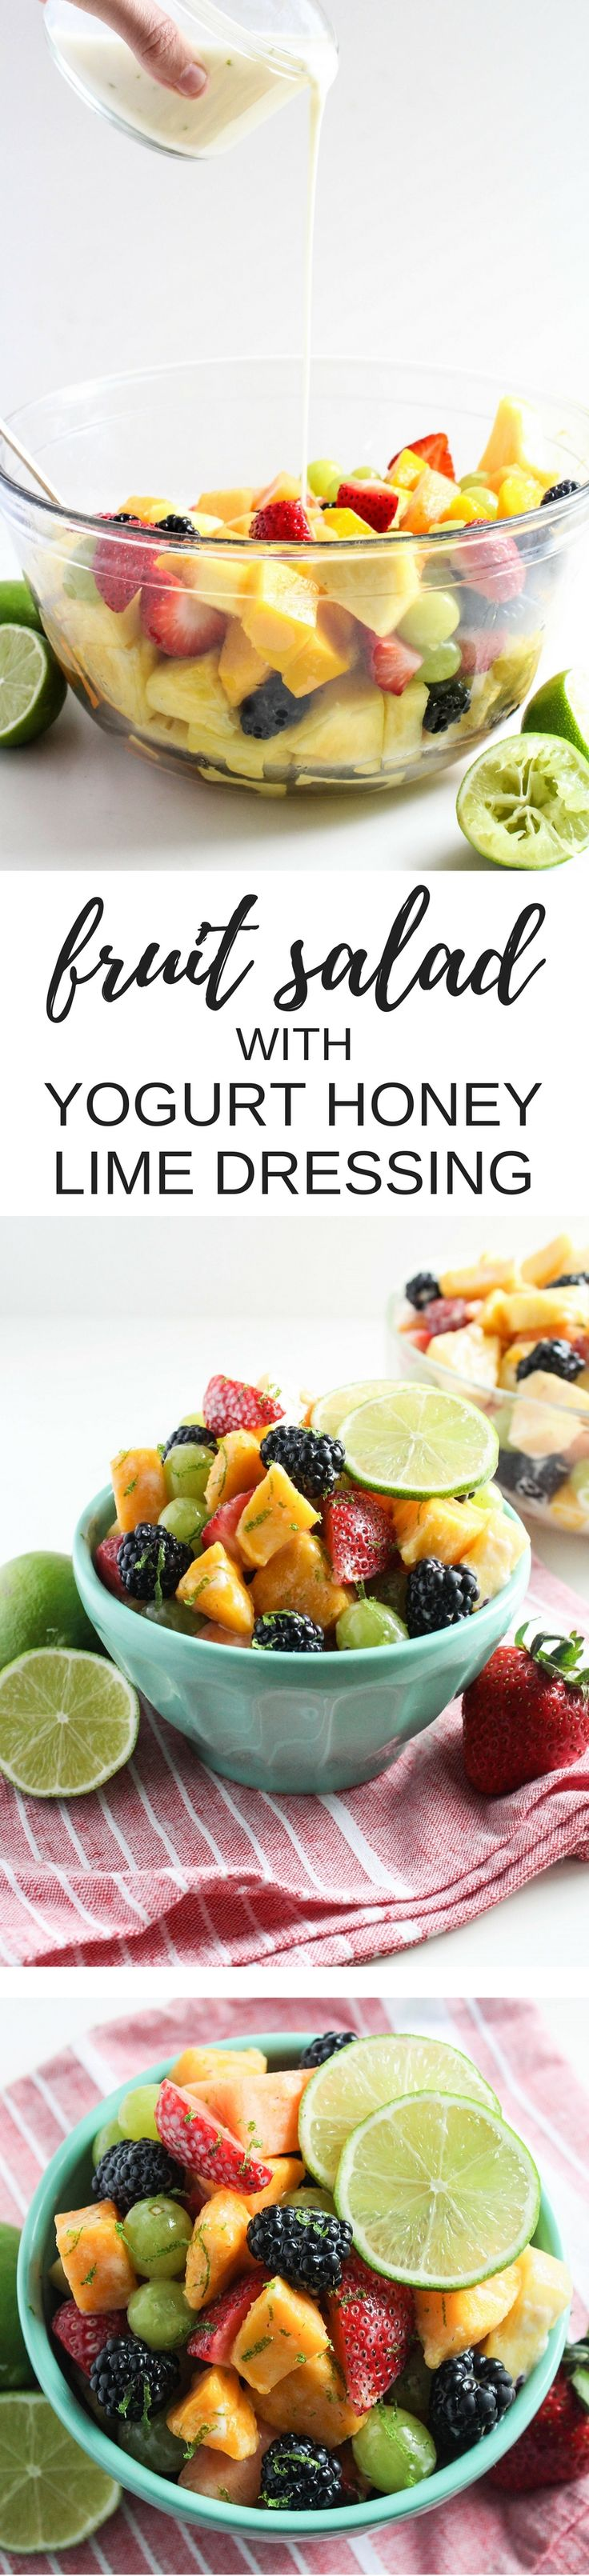 This Fruit Salad with Yogurt Honey Lime Dressing is the perfect side dish for any breakfast! Make it for a healthy addition to a brunch spread, potluck, or picnic. | healthy breakfast recipes | fruit salad recipe |